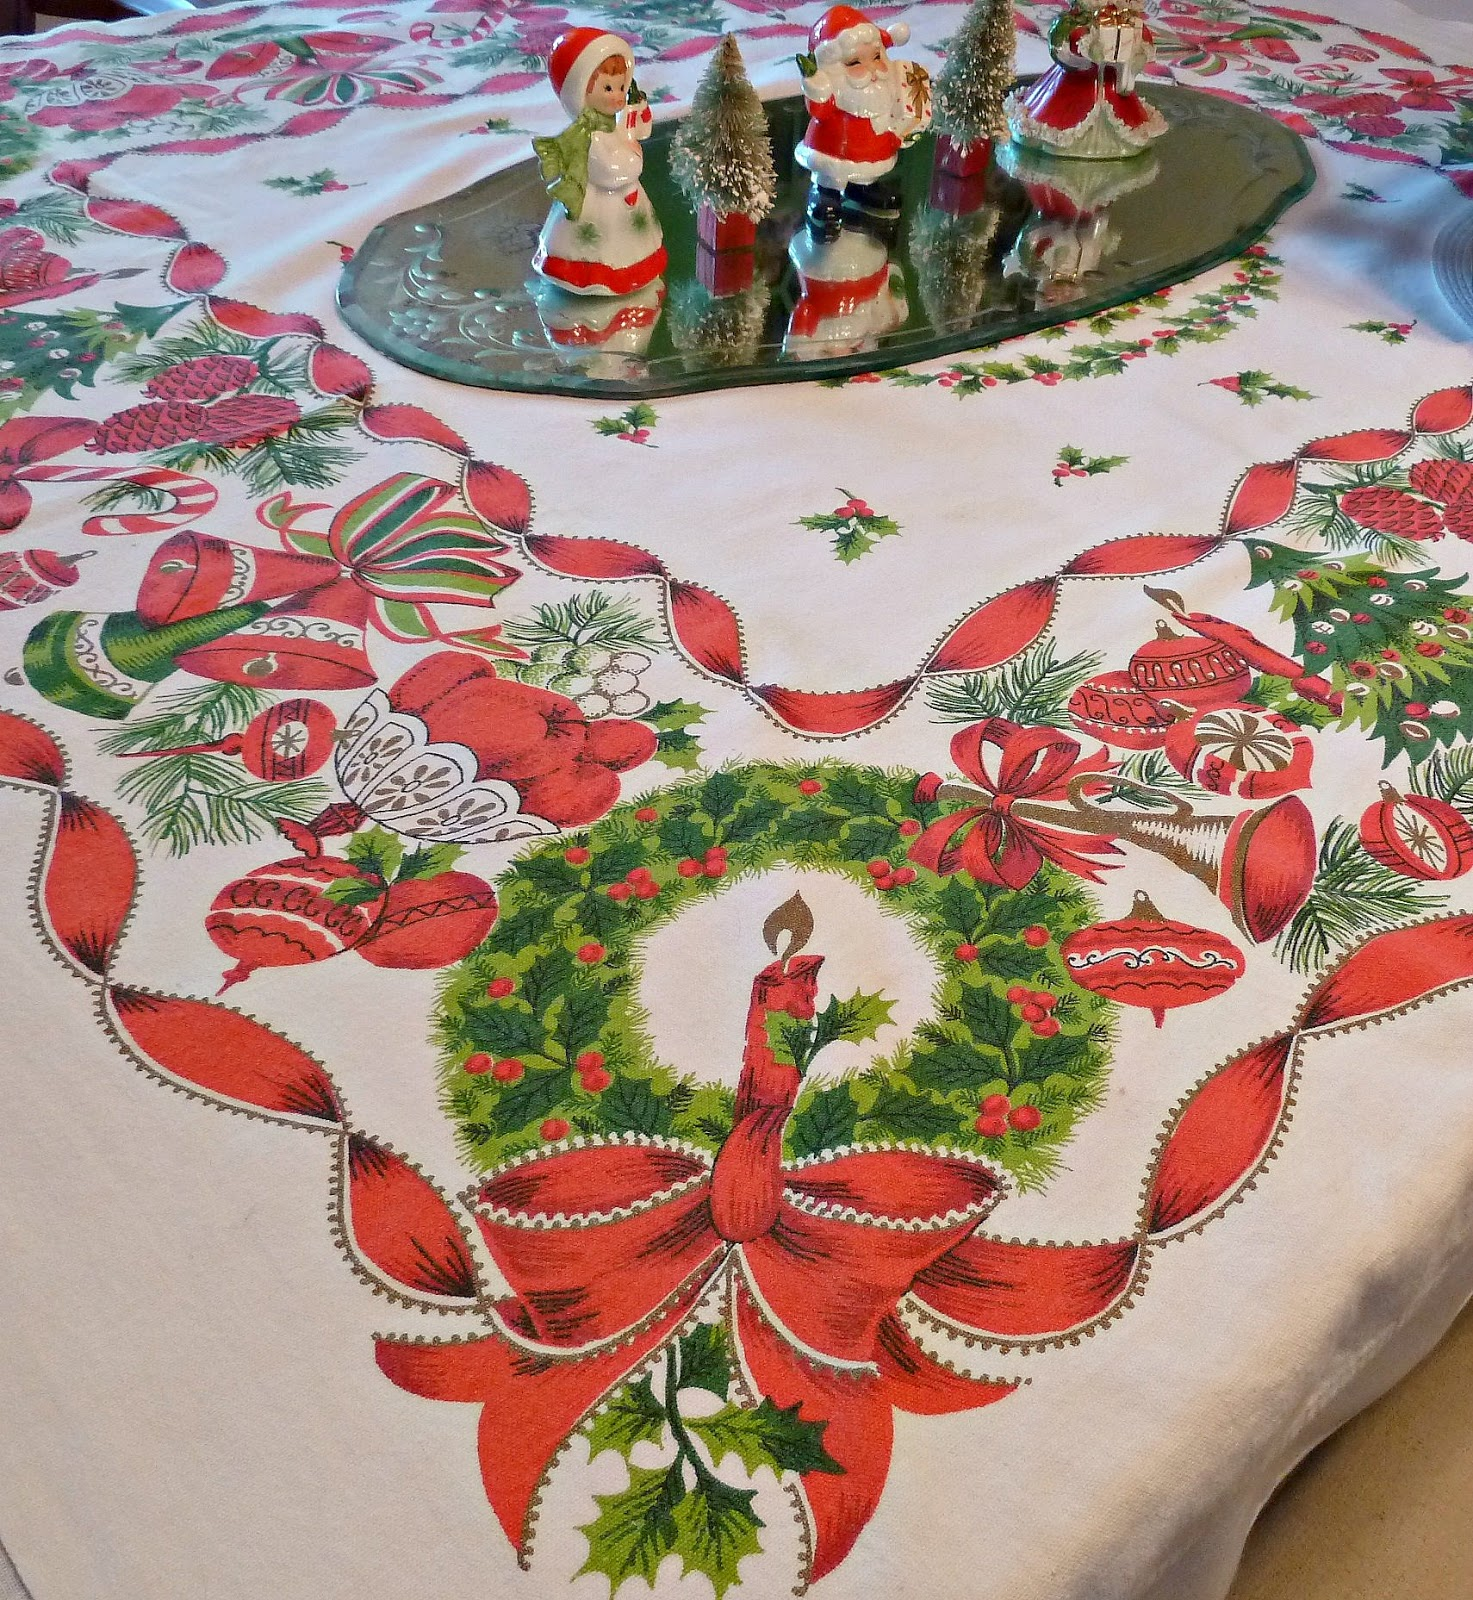 ... +vintage+christmas+tablecloth+decorations+girl+angel+figurines.jpg